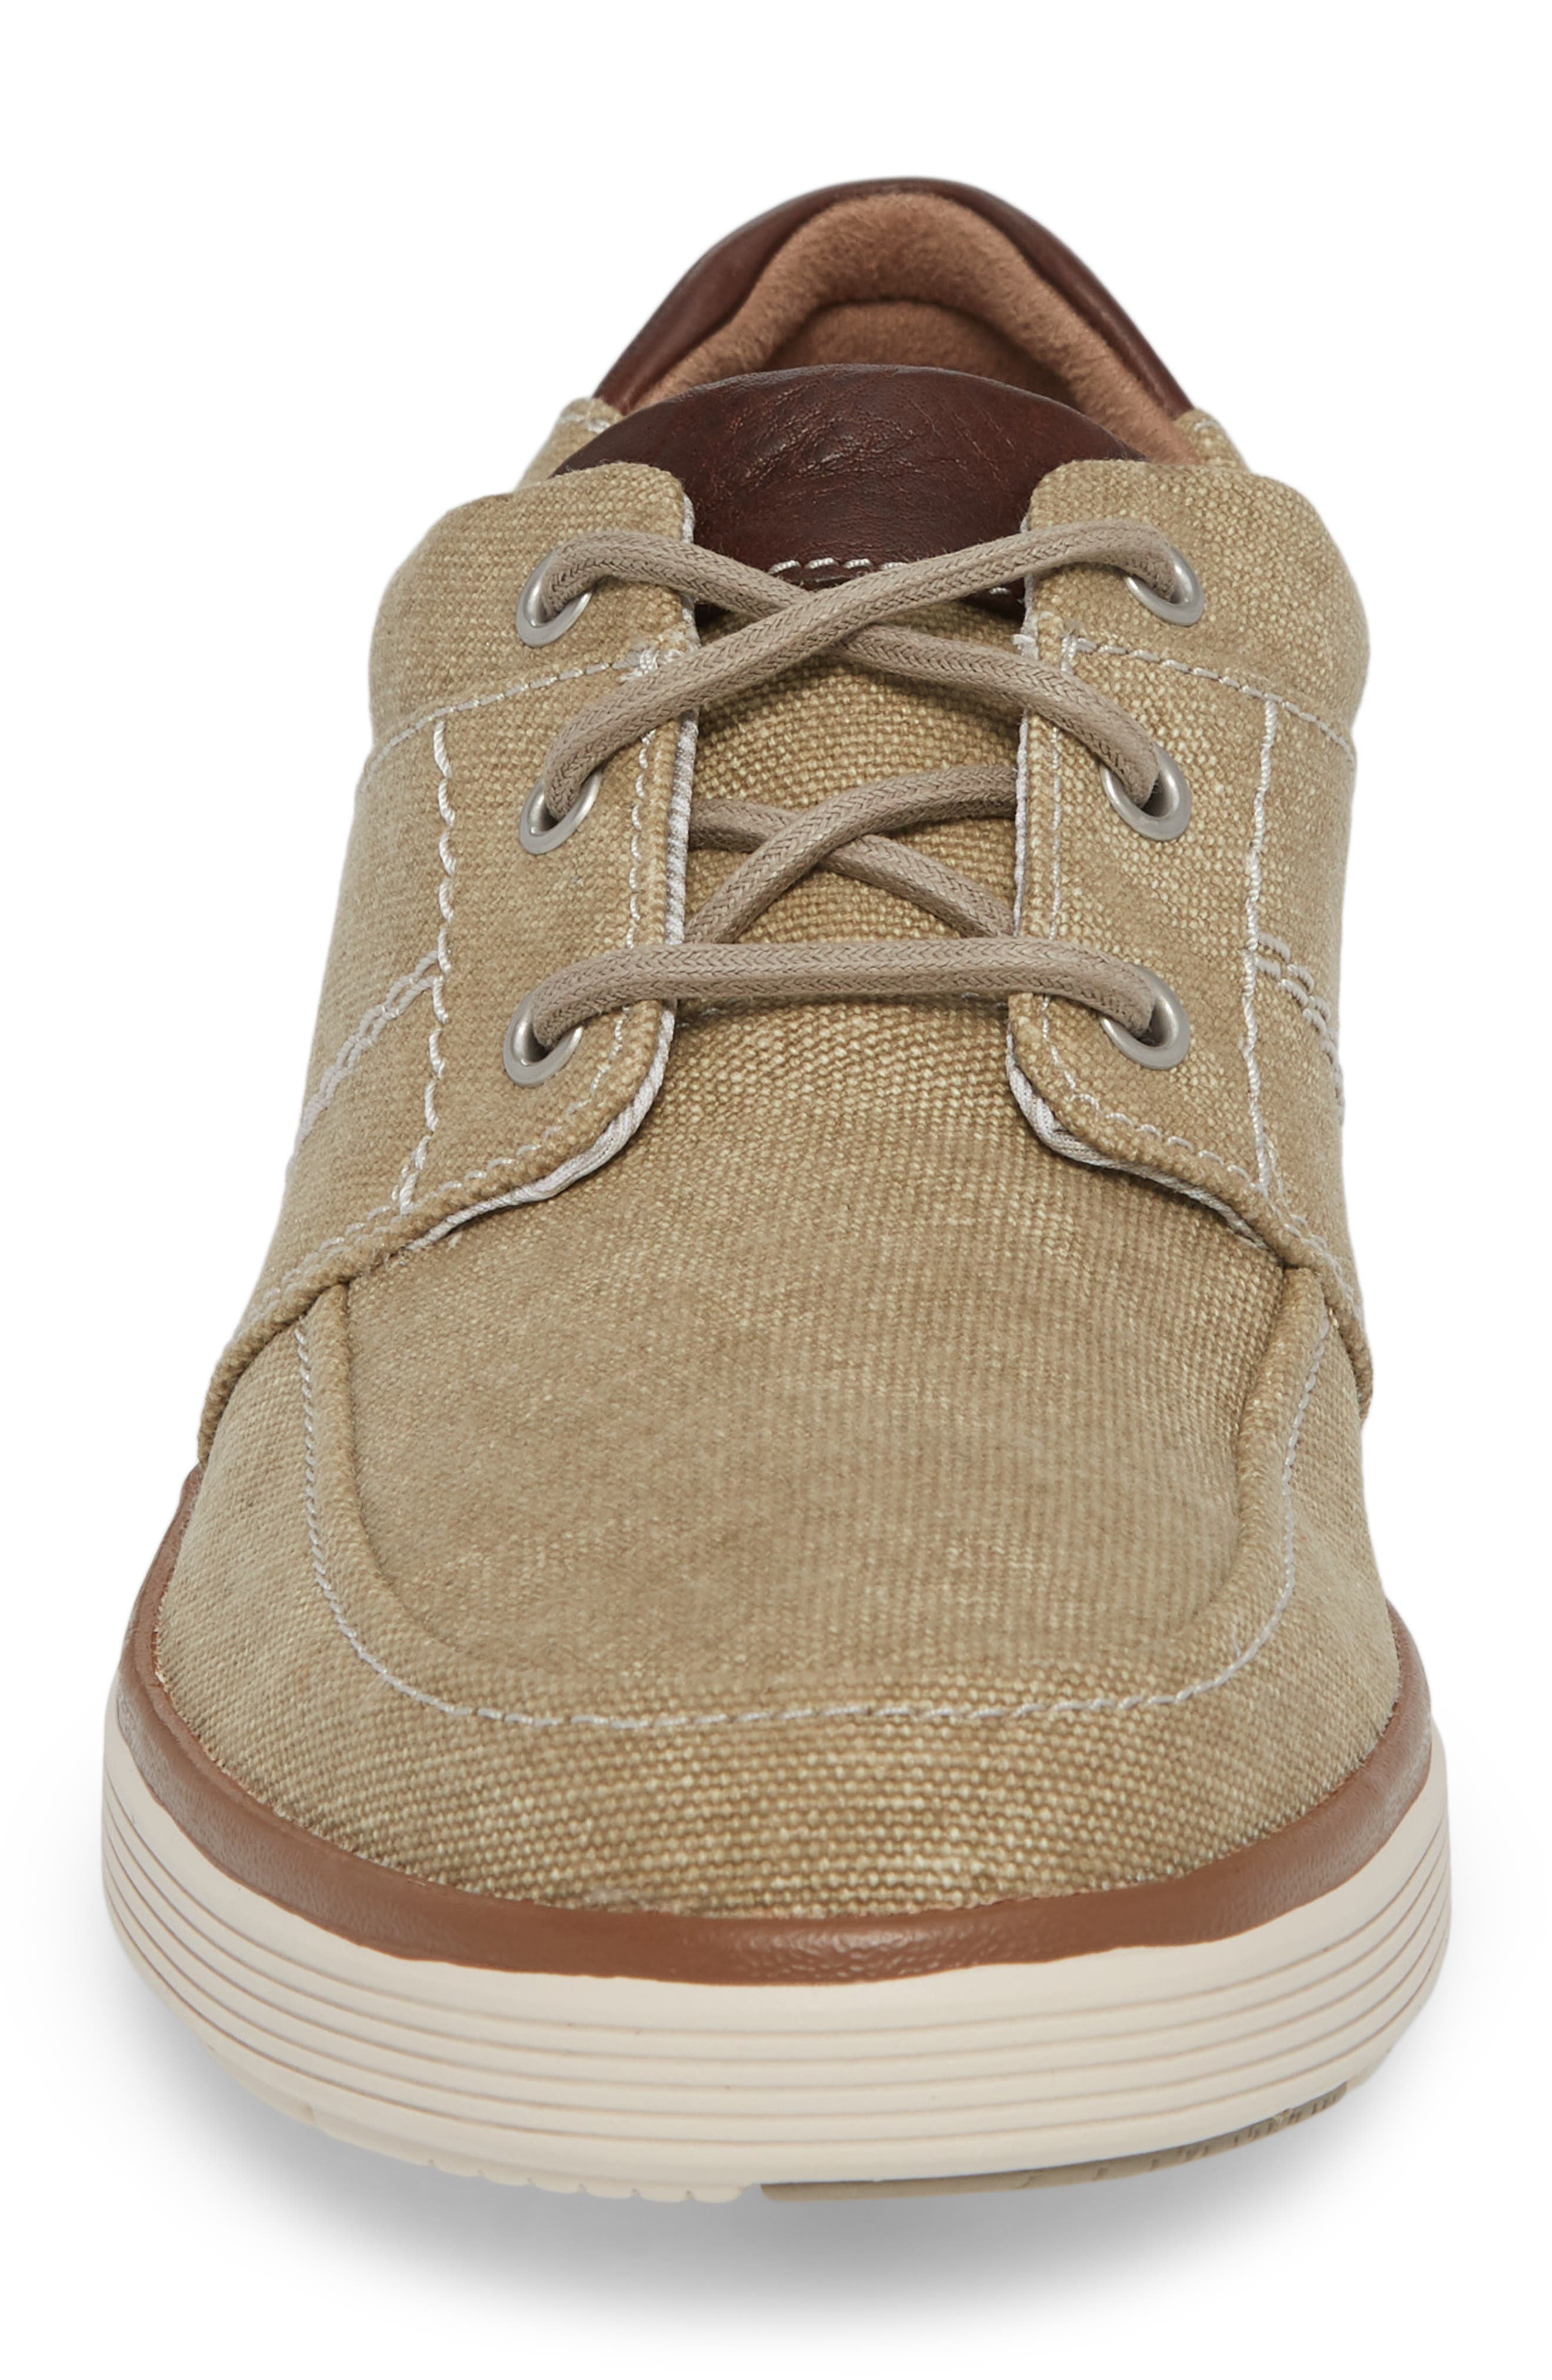 Clarks<sup>®</sup> Unabode Form Sneaker,                             Alternate thumbnail 4, color,                             SAND FABRIC